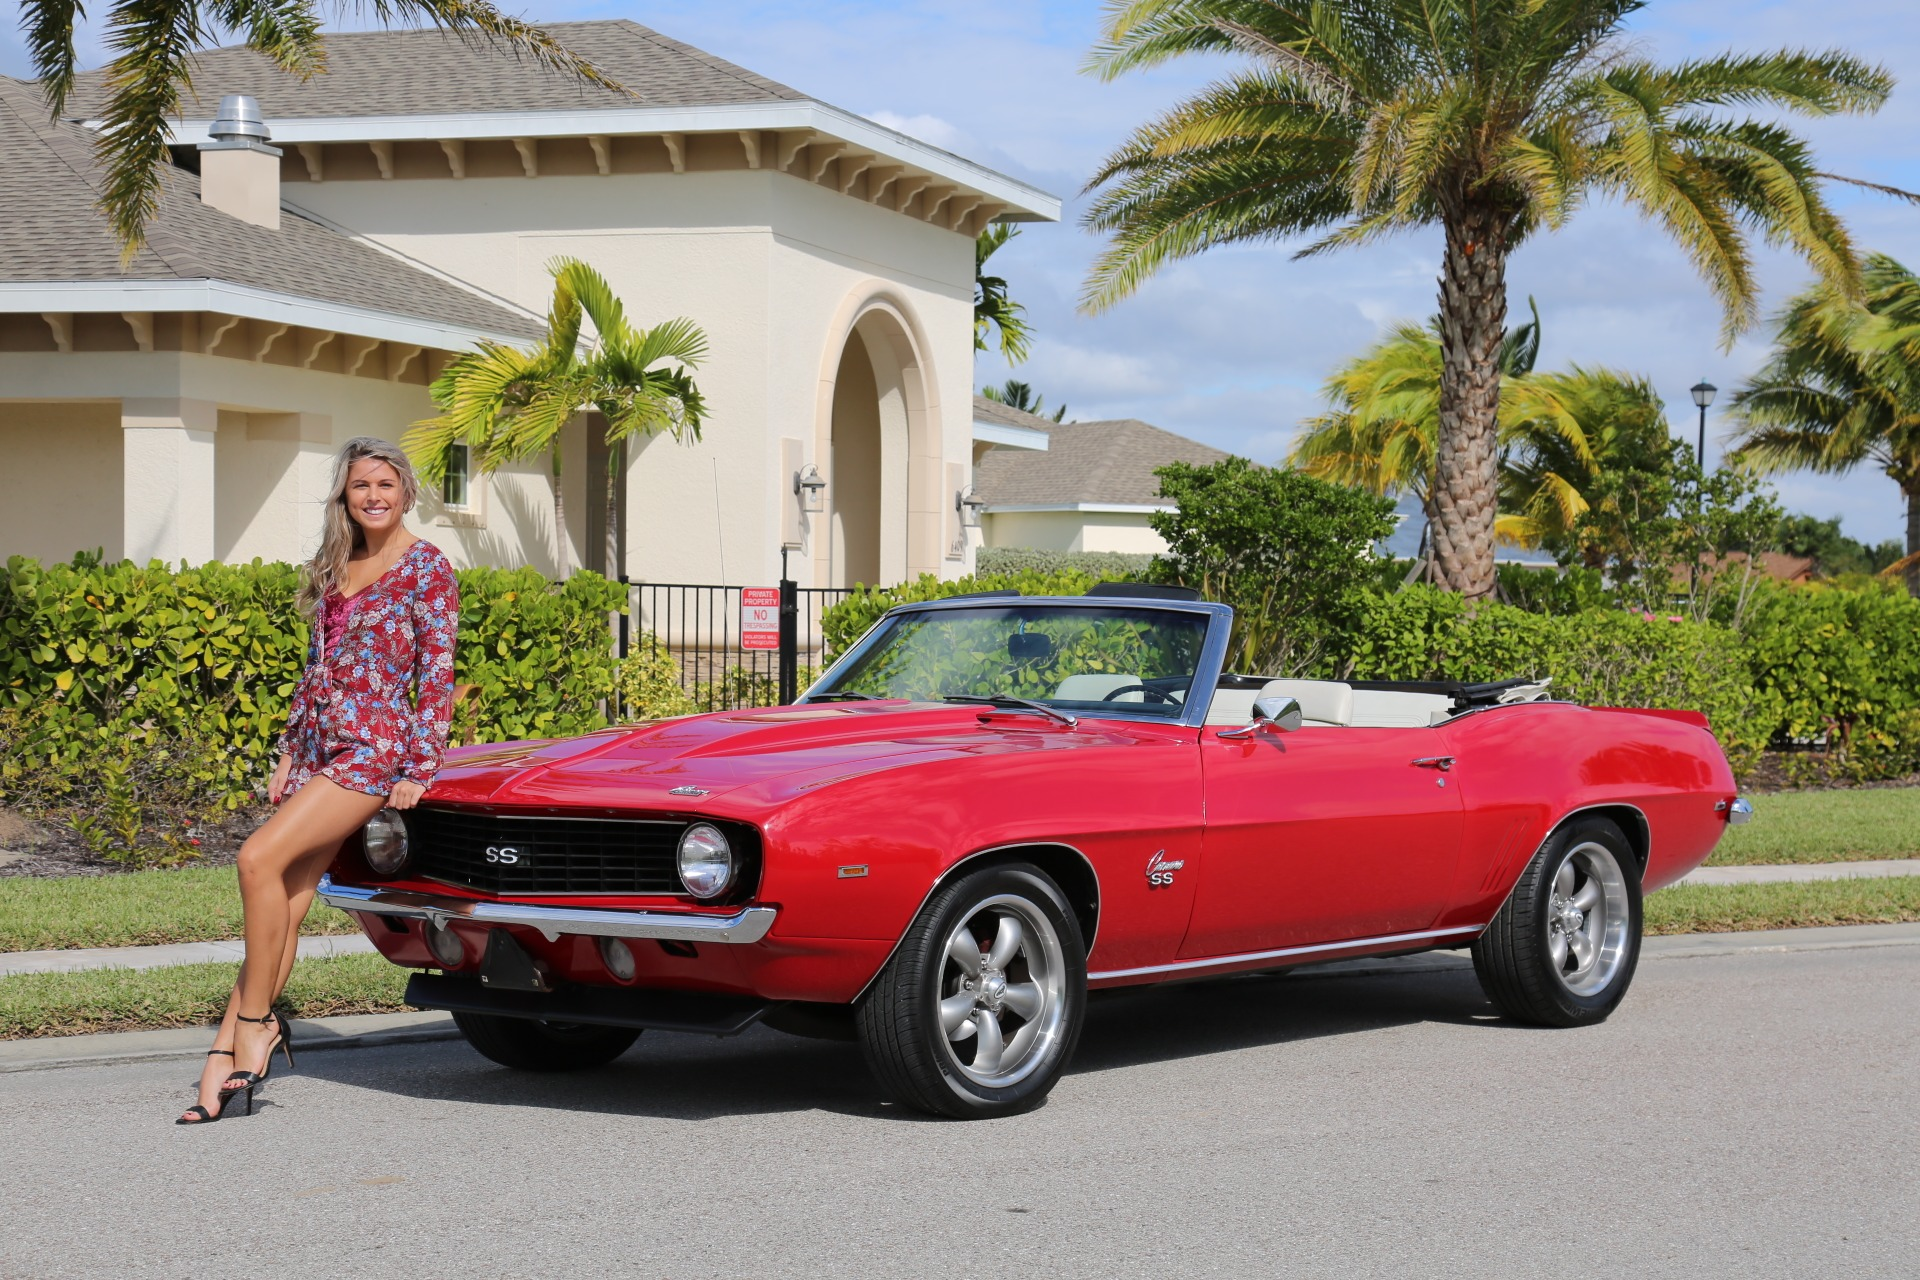 Used 1969 Chevy Camaro Convertible V8 Auto 12 Bolt Rear for sale Sold at Muscle Cars for Sale Inc. in Fort Myers FL 33912 1